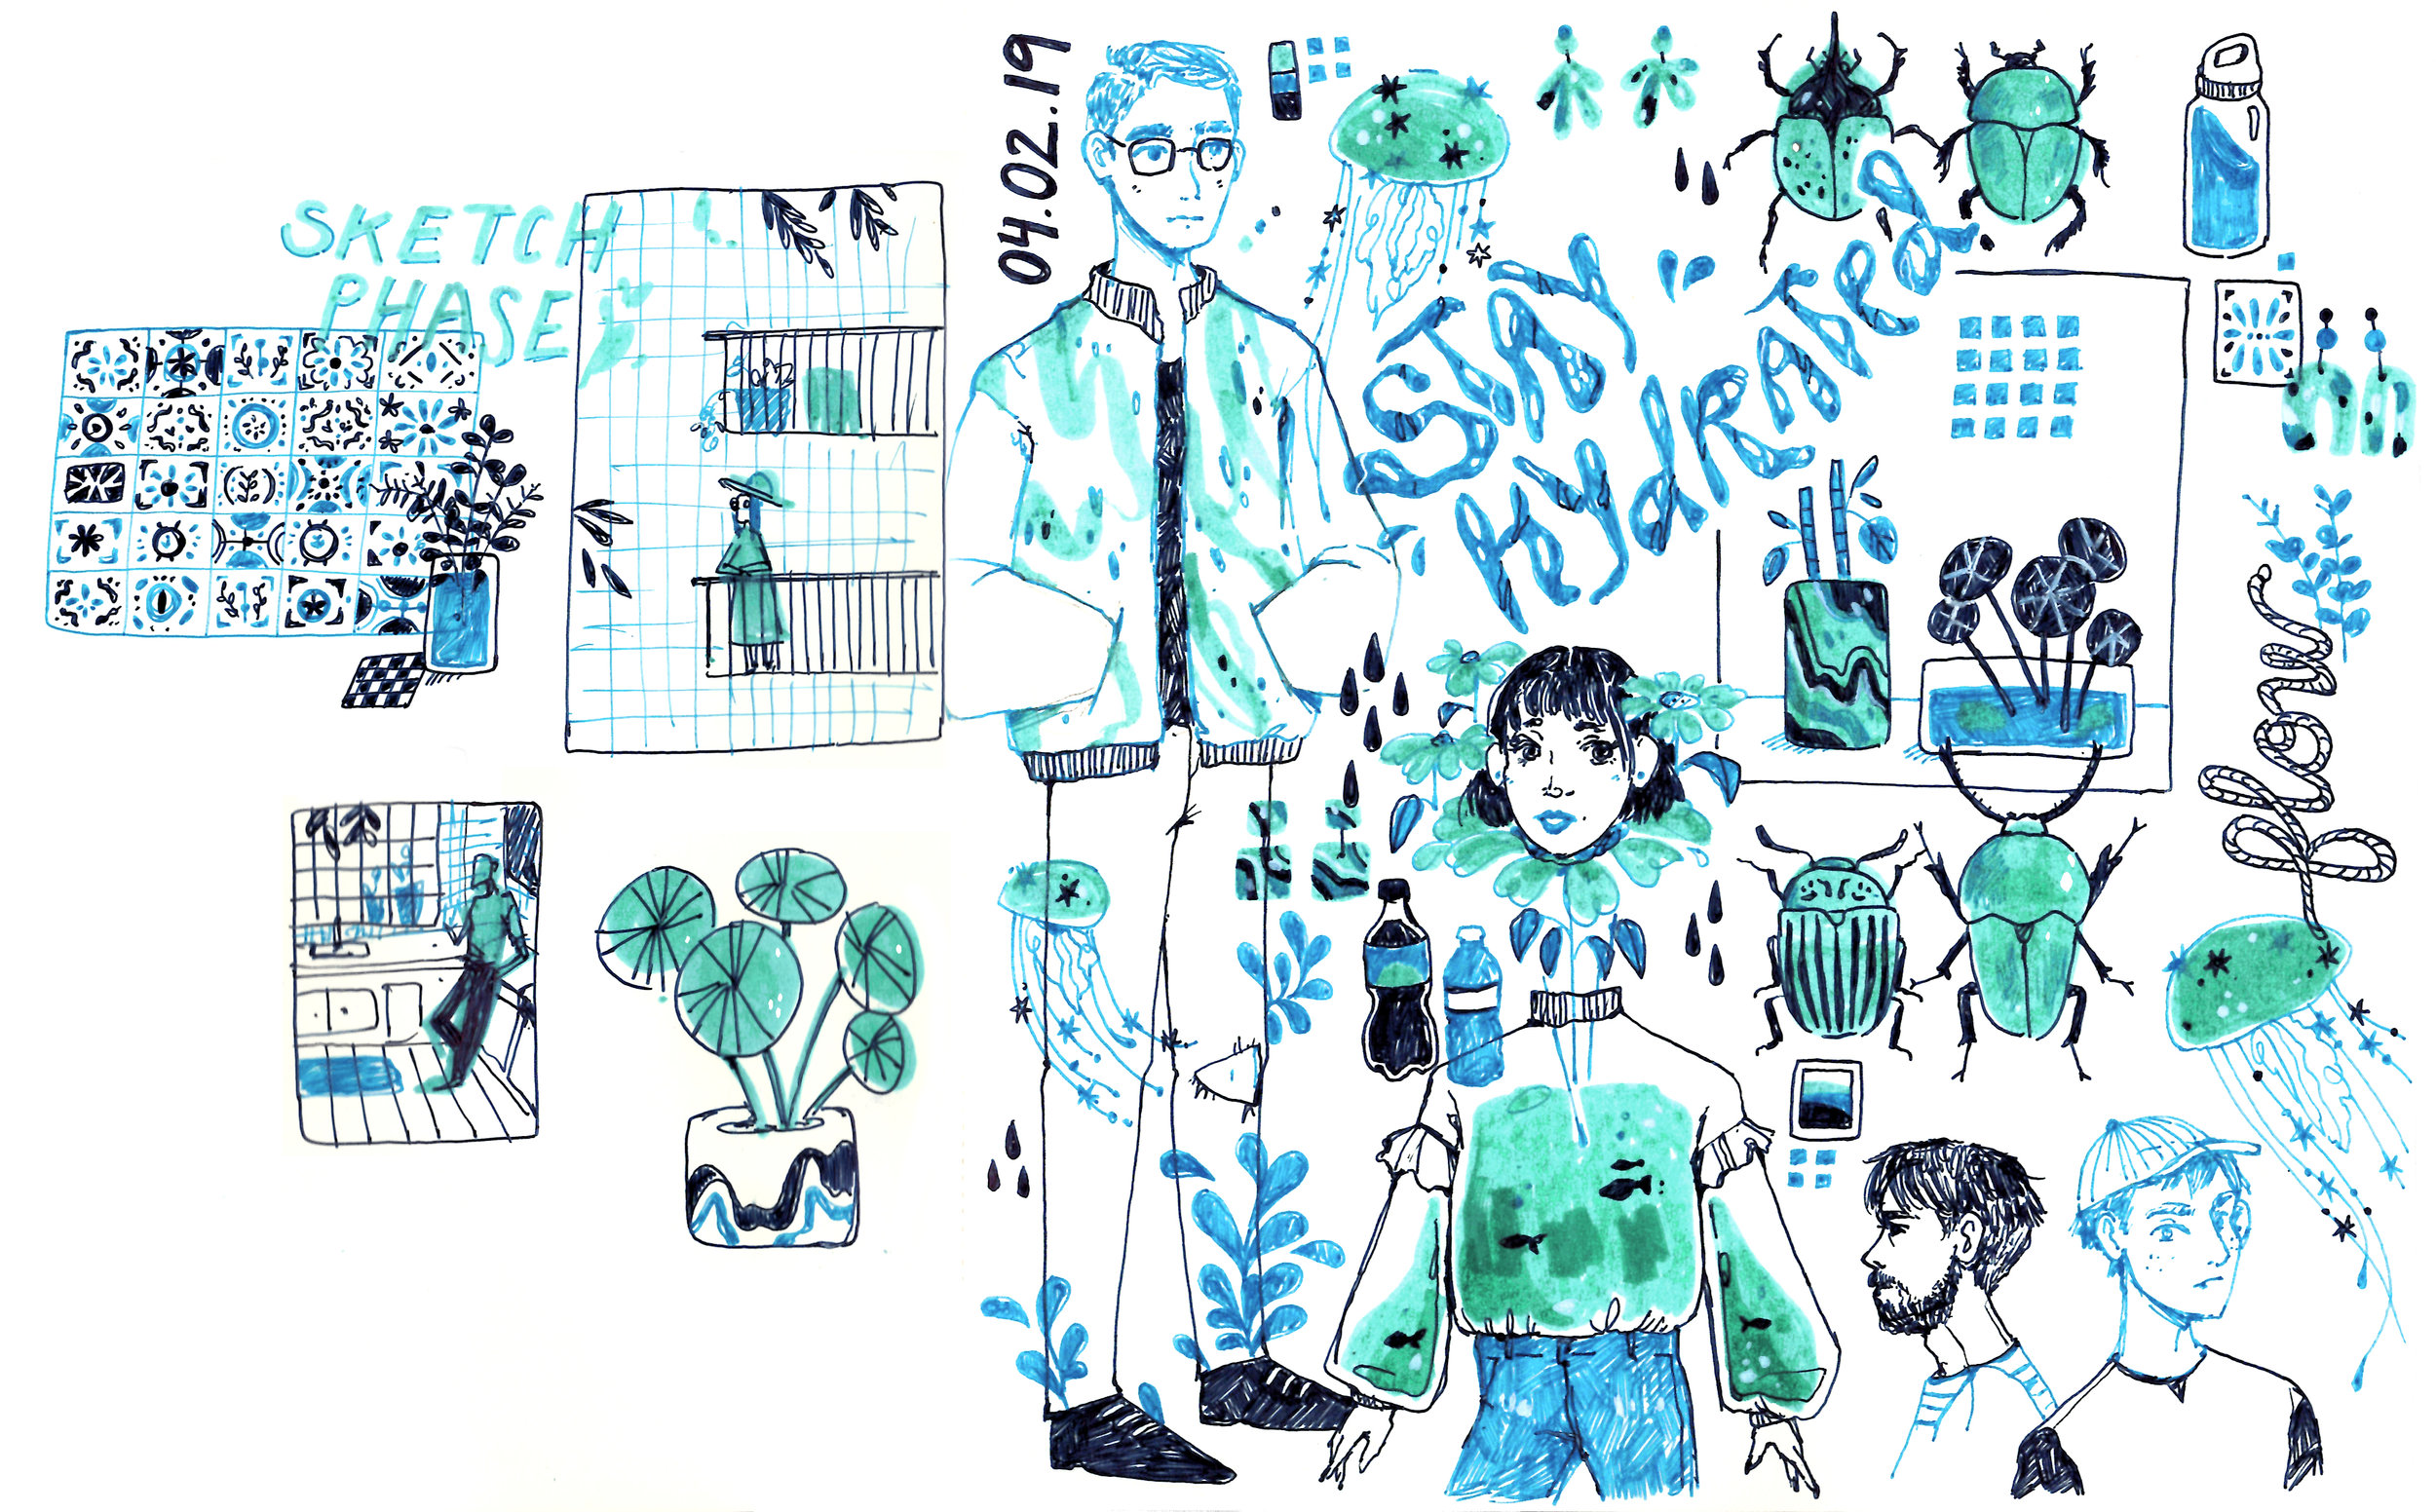 blue sketchbook.jpg